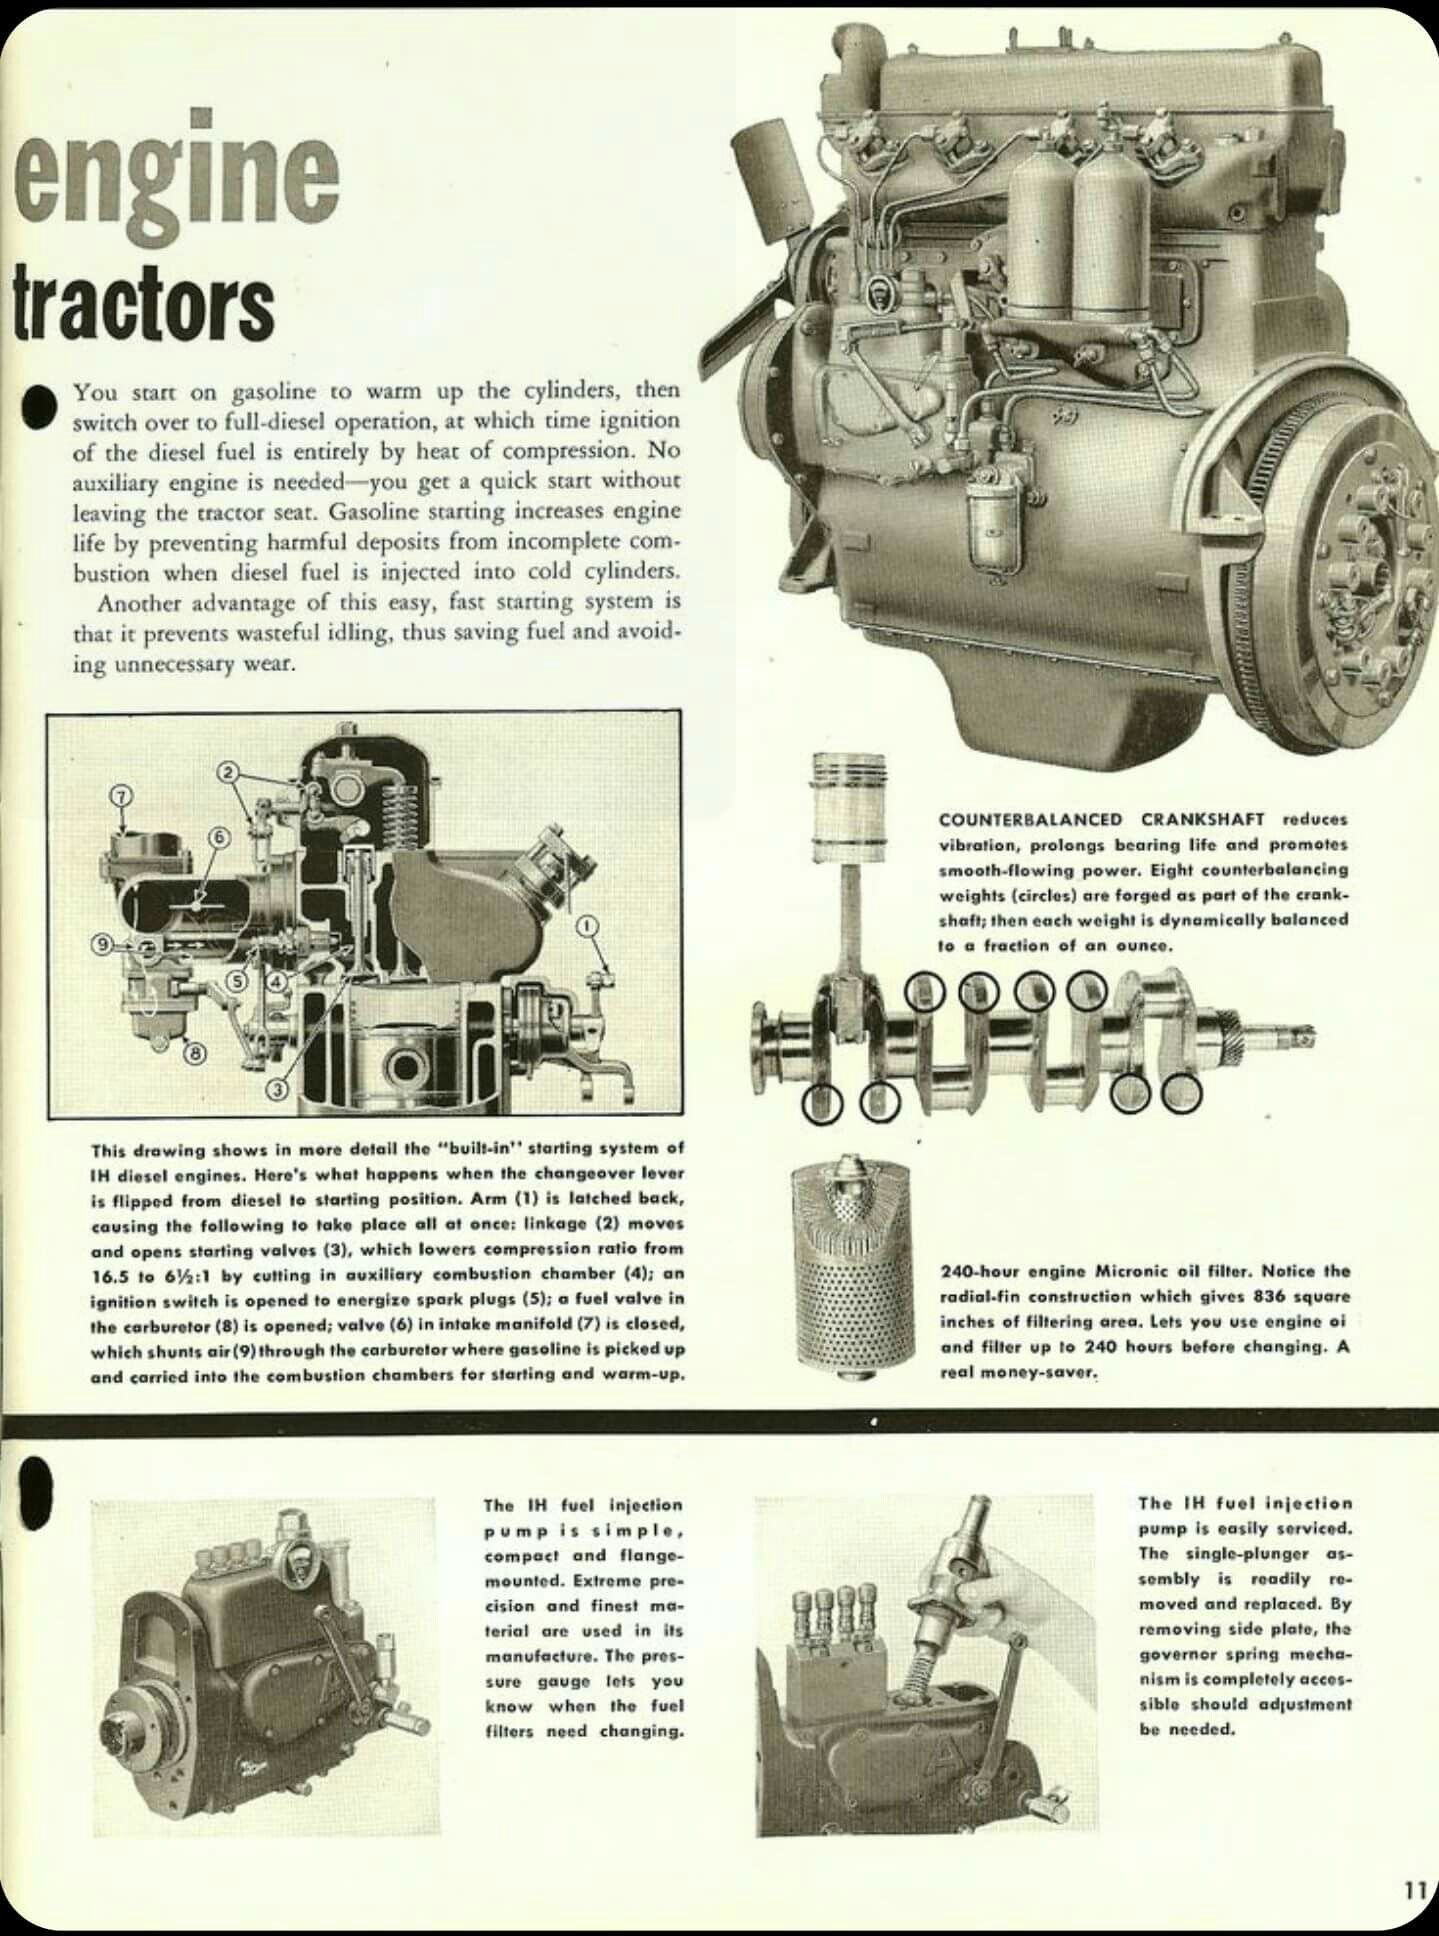 Pin By Jerry Brown On Diesel Engine Old Tractors Tractors Case